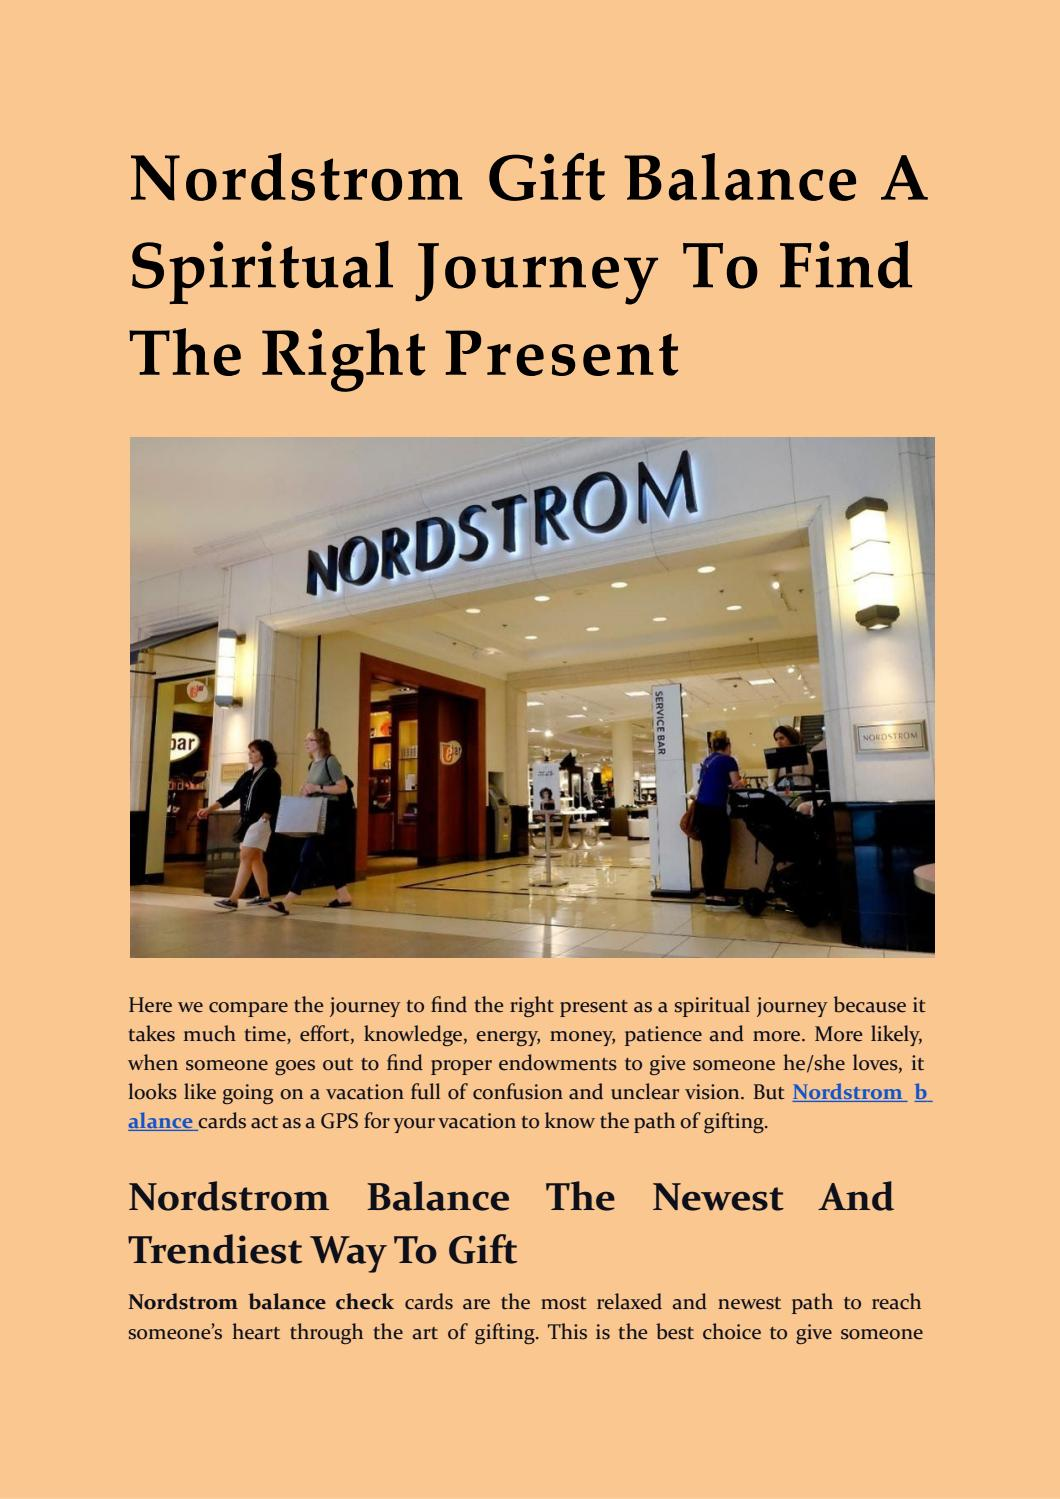 Nordstrom Gift Card Balance Check Nordstrom Card Balance Check By Barryallen4191 Issuu